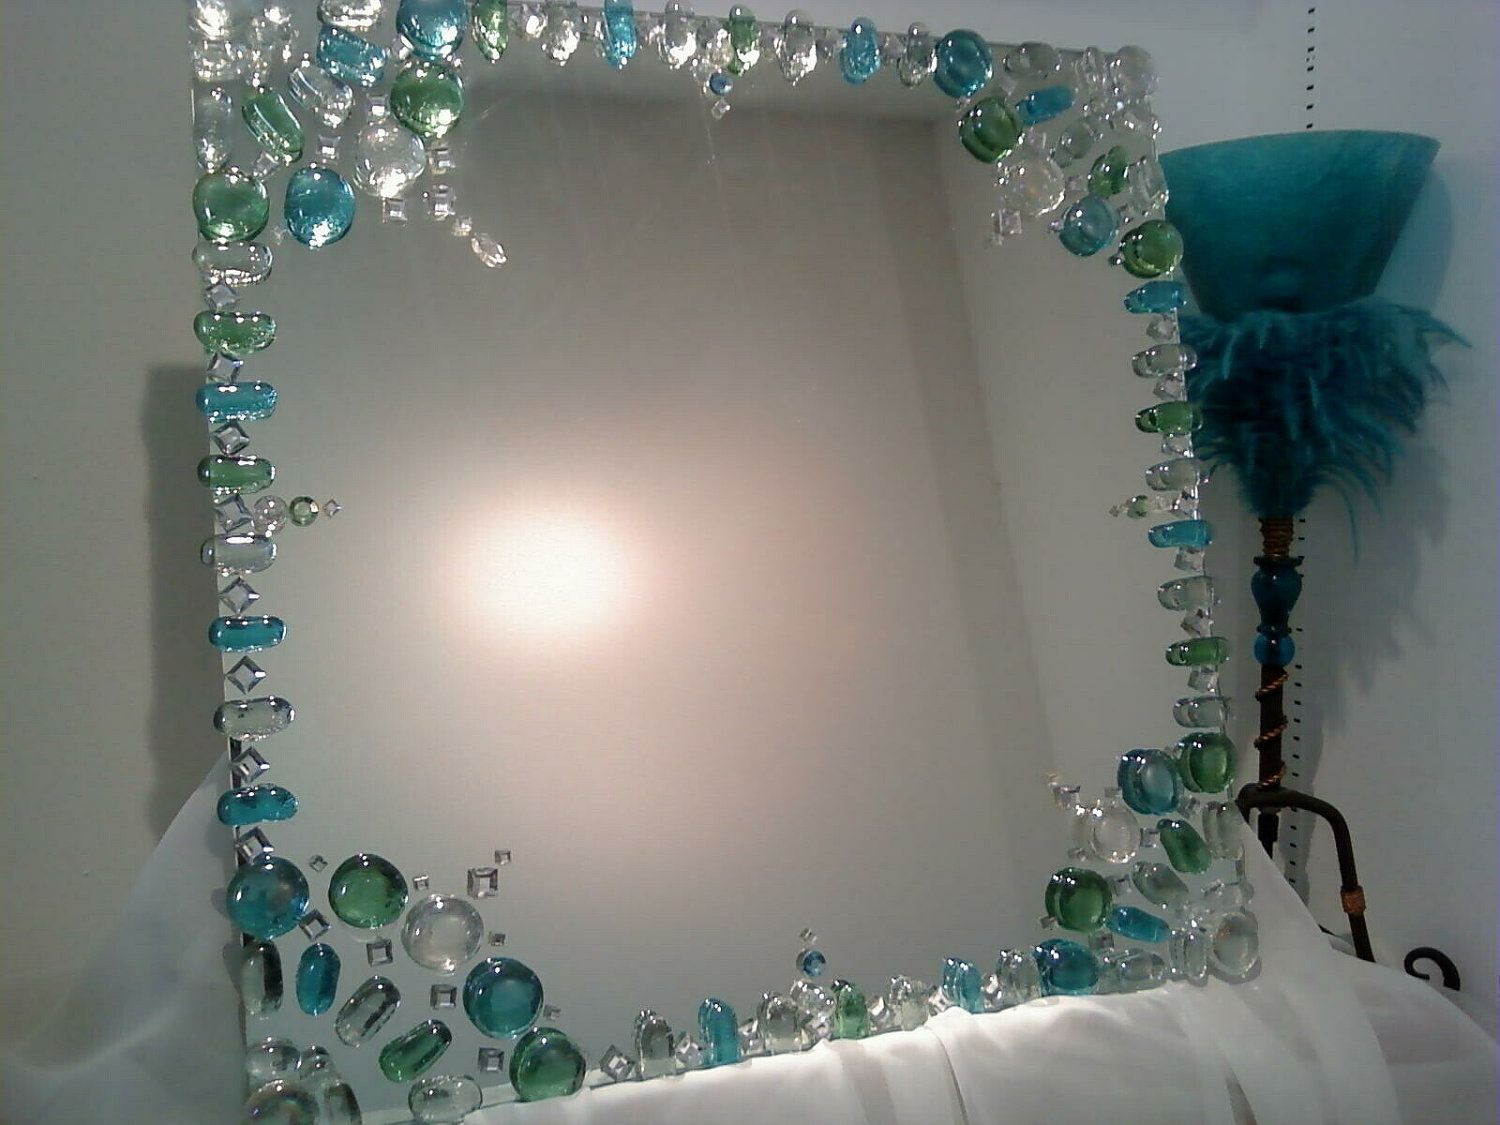 Mirror Design Idea Decorating The Edge With Gems Instead Of Frames House Ideas Pinterest